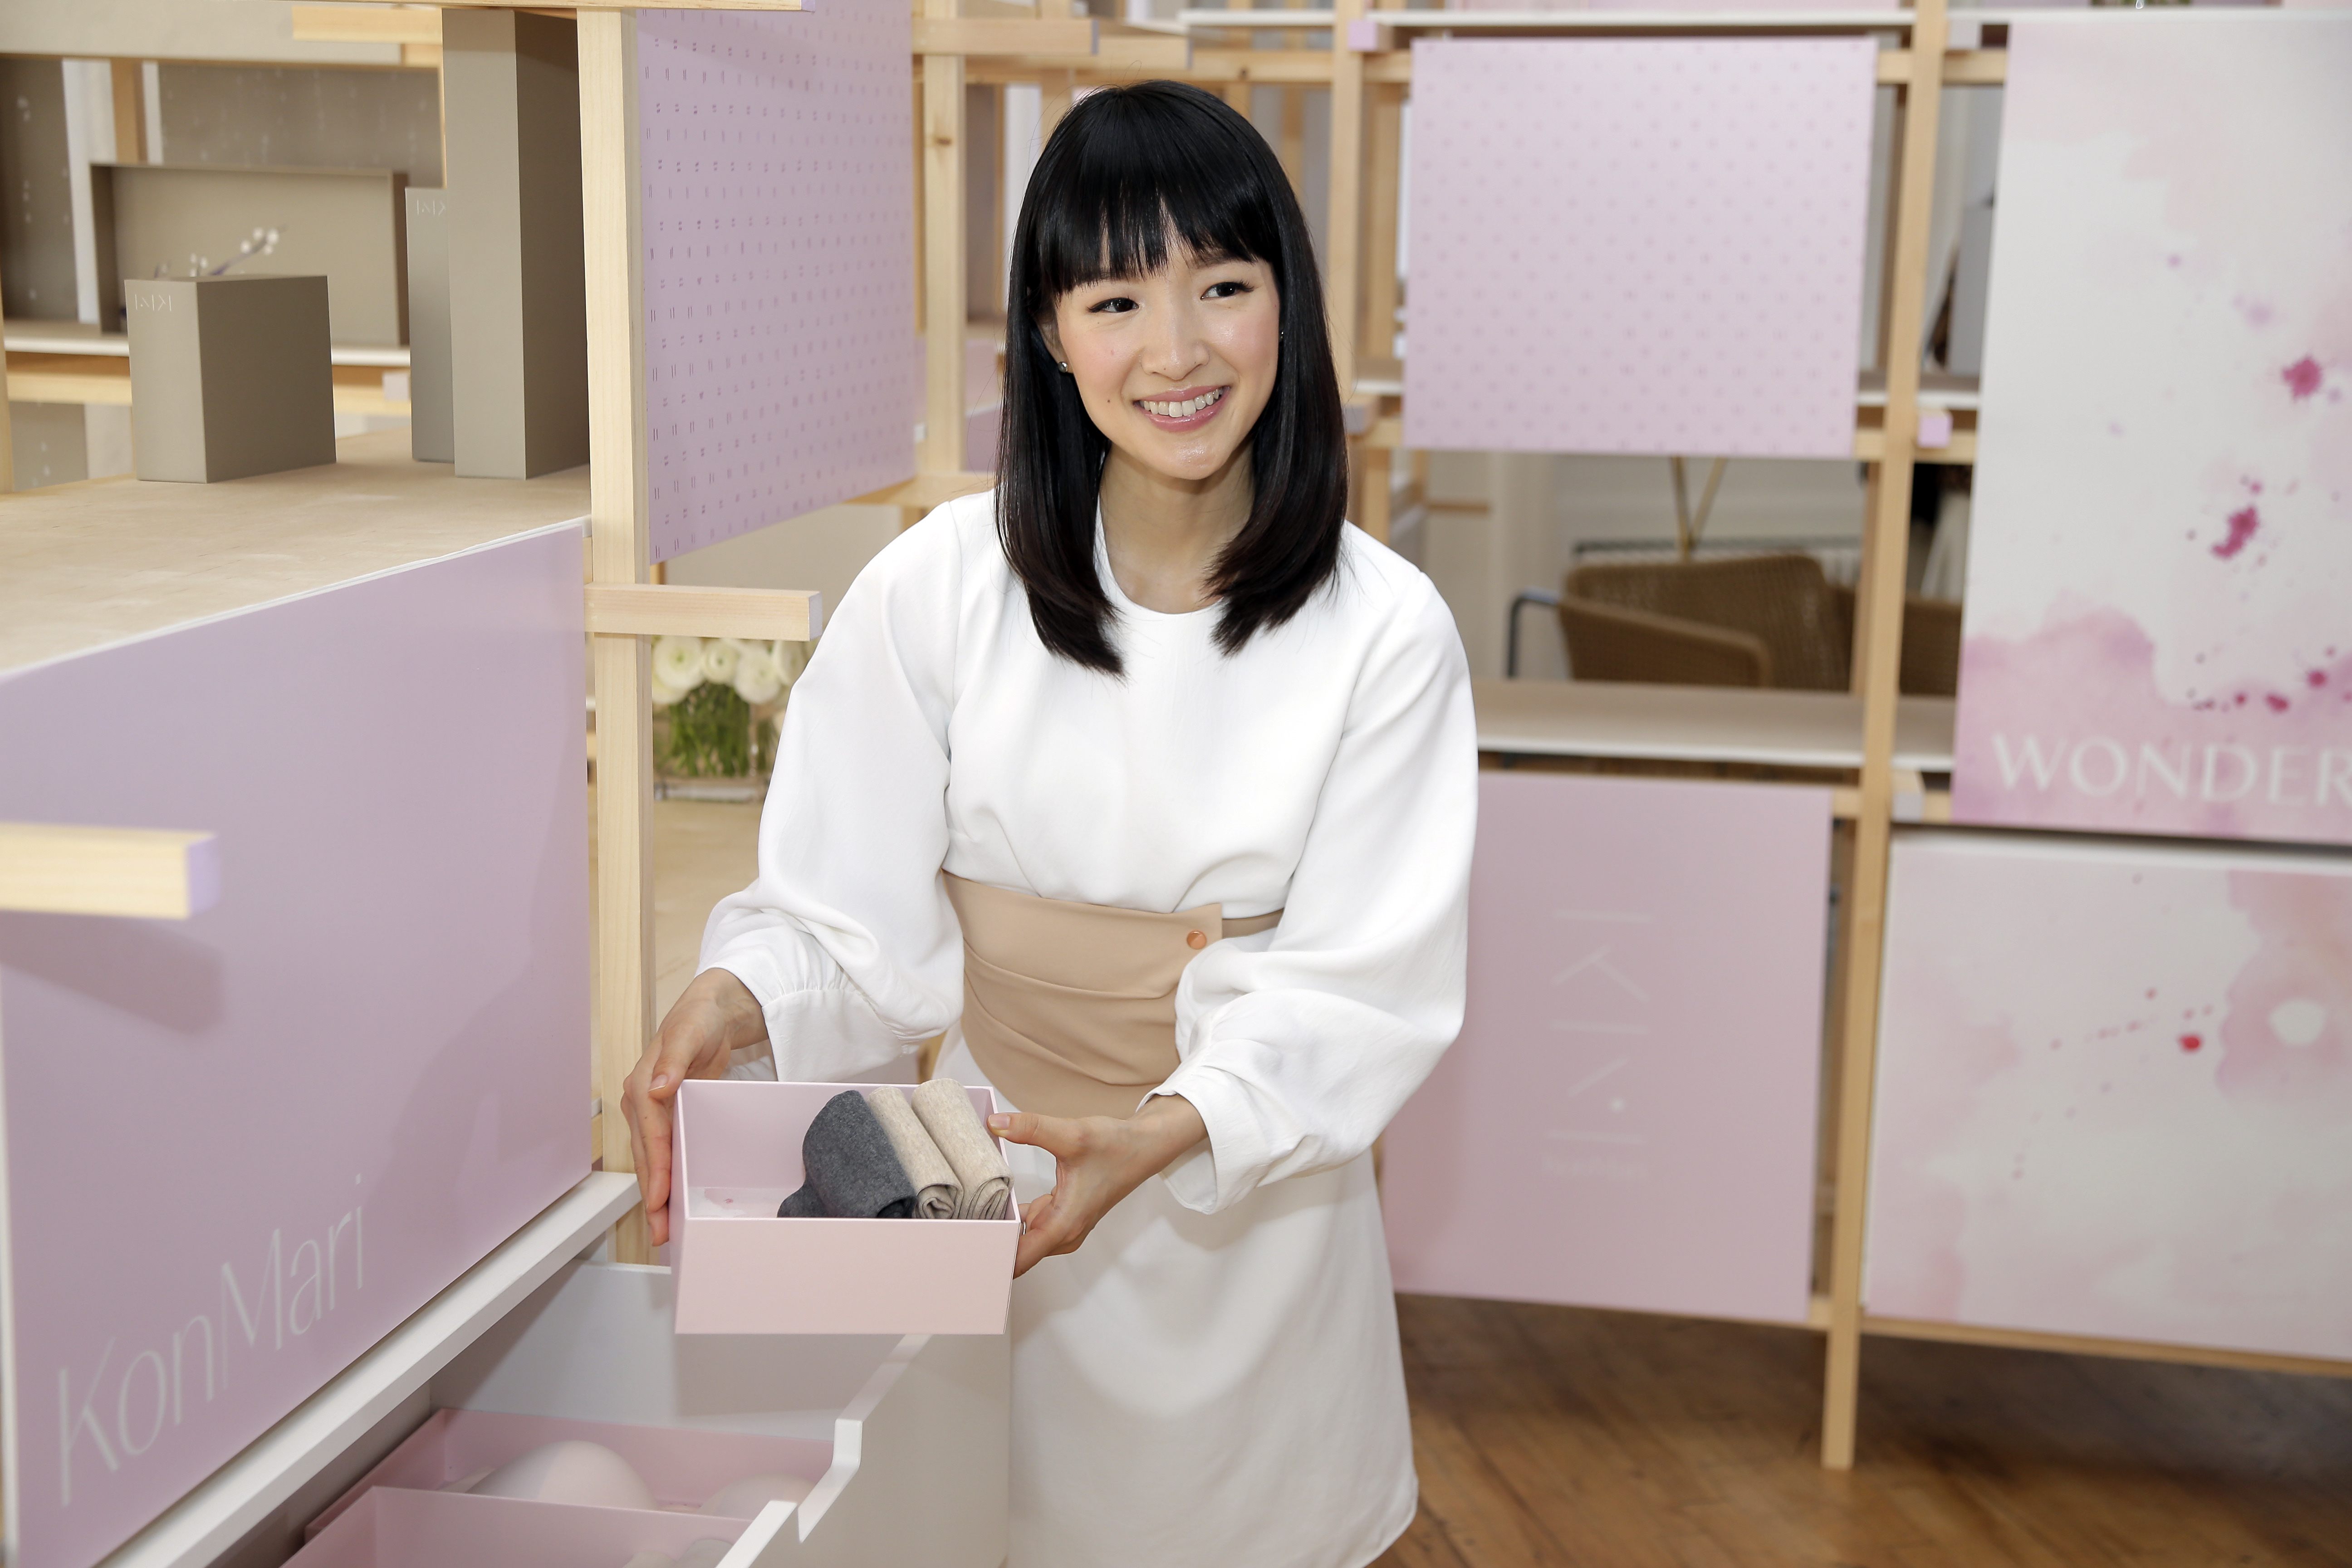 Seems like a lot of people have been tapping their inner Marie Kondo during the pandemic, finding ways to get rid of things cluttering their homes.